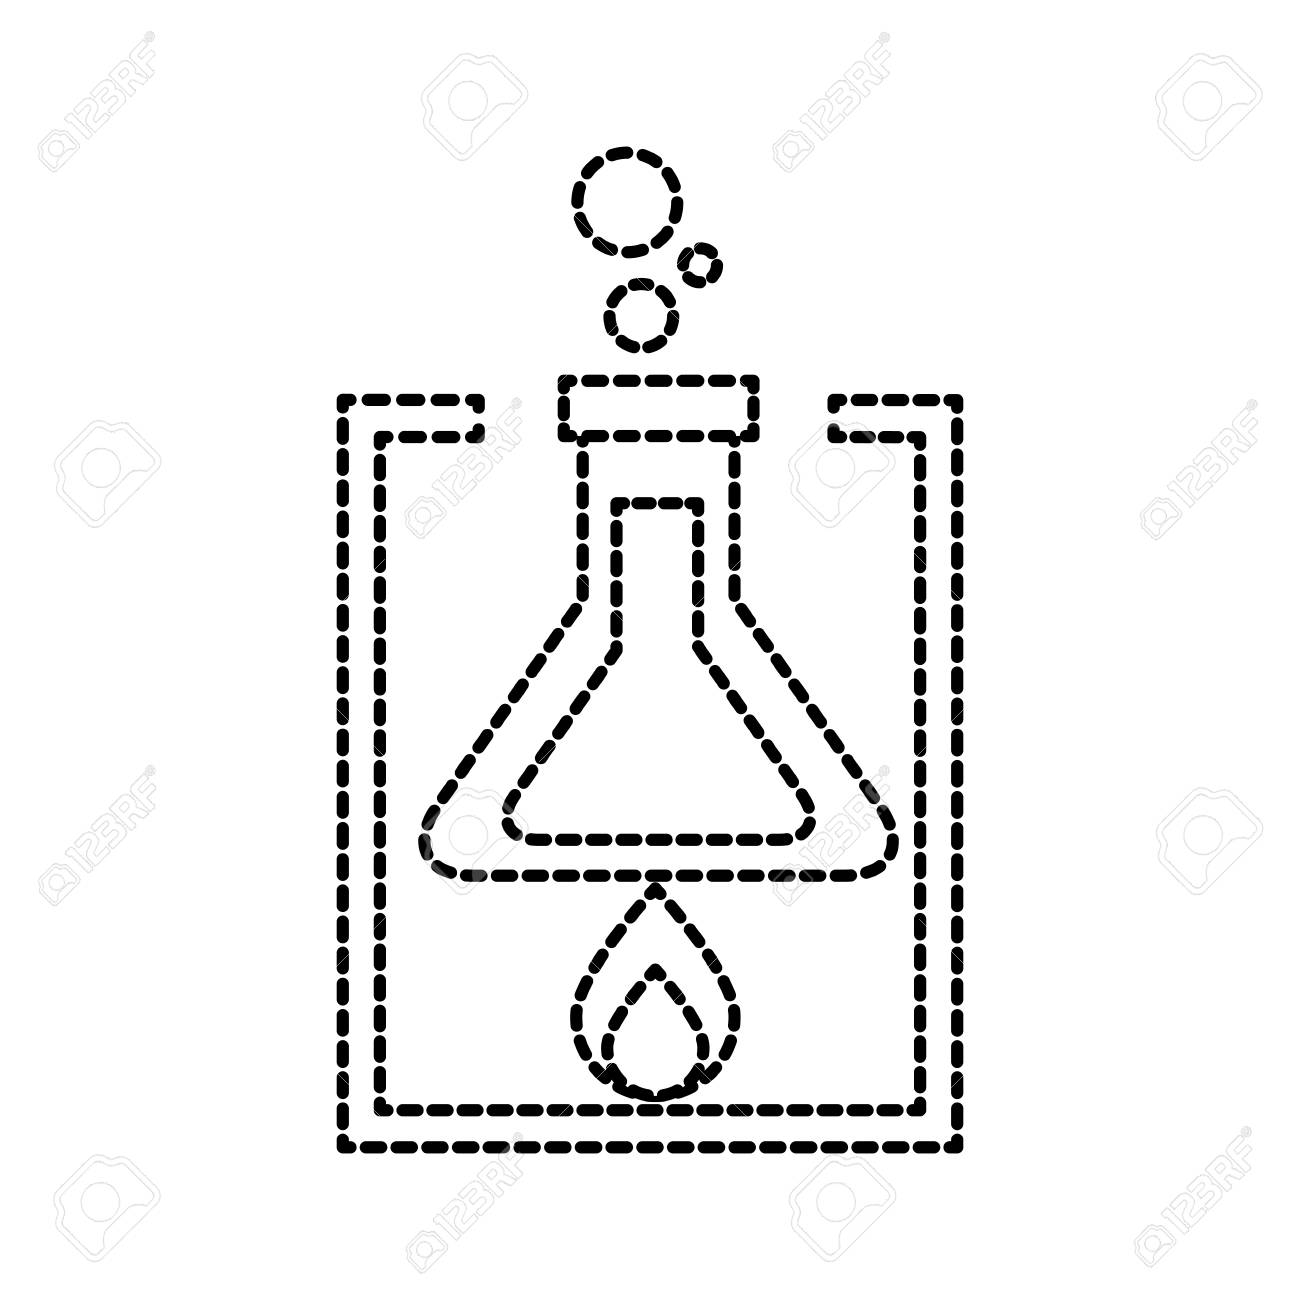 Black and White Test Tubes in a Holder Clip Art - Black and White Test Tubes  in a Holder Vector Image